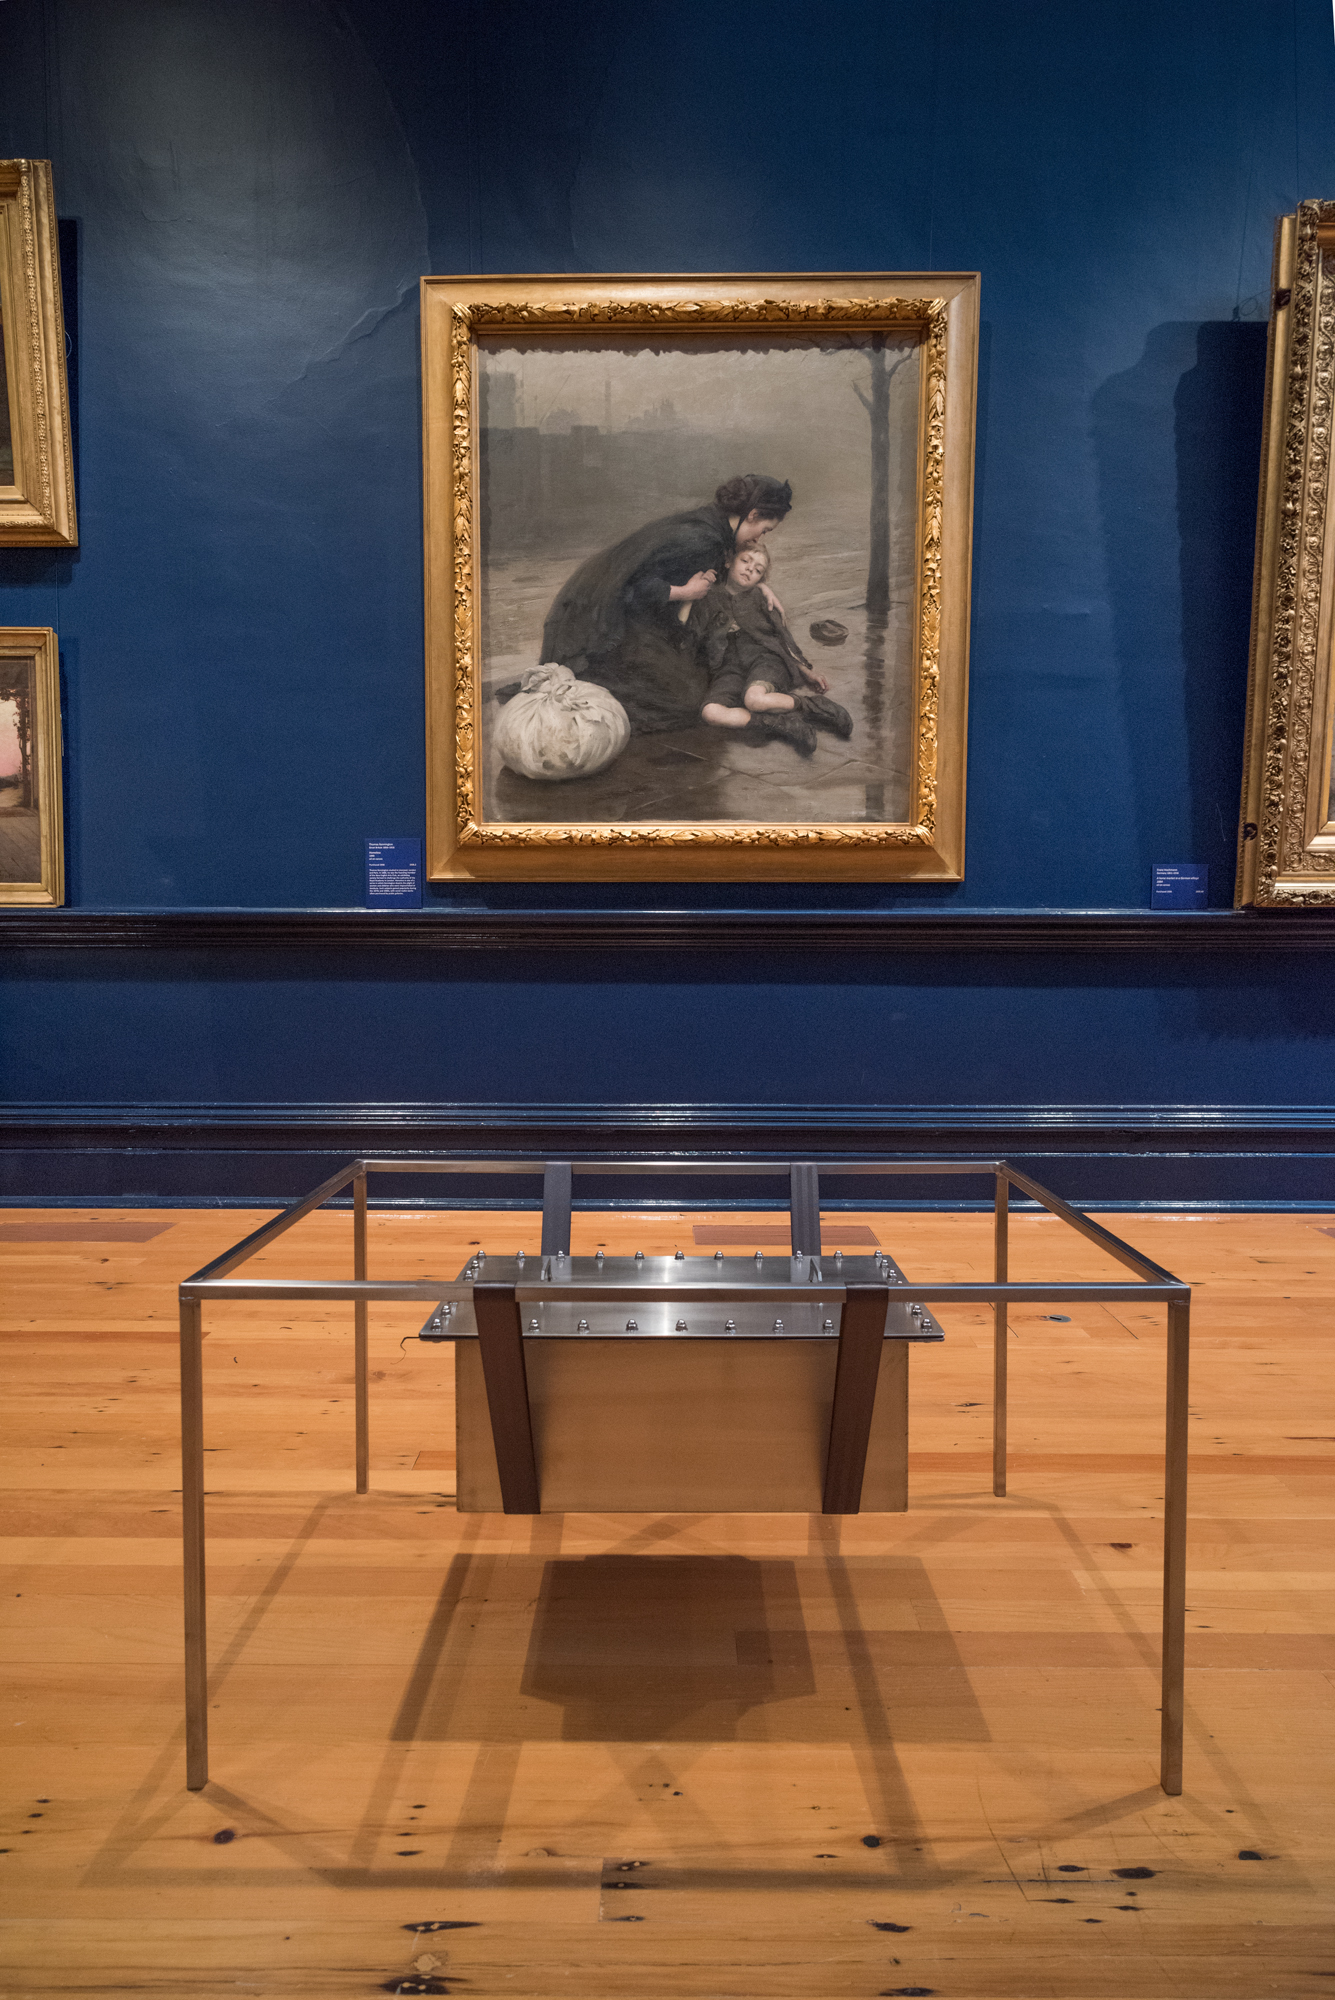 Letters to the Living (2018), installation view at Bendigo Art Gallery for  New Histories.  Photo: Ian Hill  Painting above: Thomas Kennington, Homeless, 1890, oil on canvas, Collection of Bendigo Art Gallery, Purchased 1906